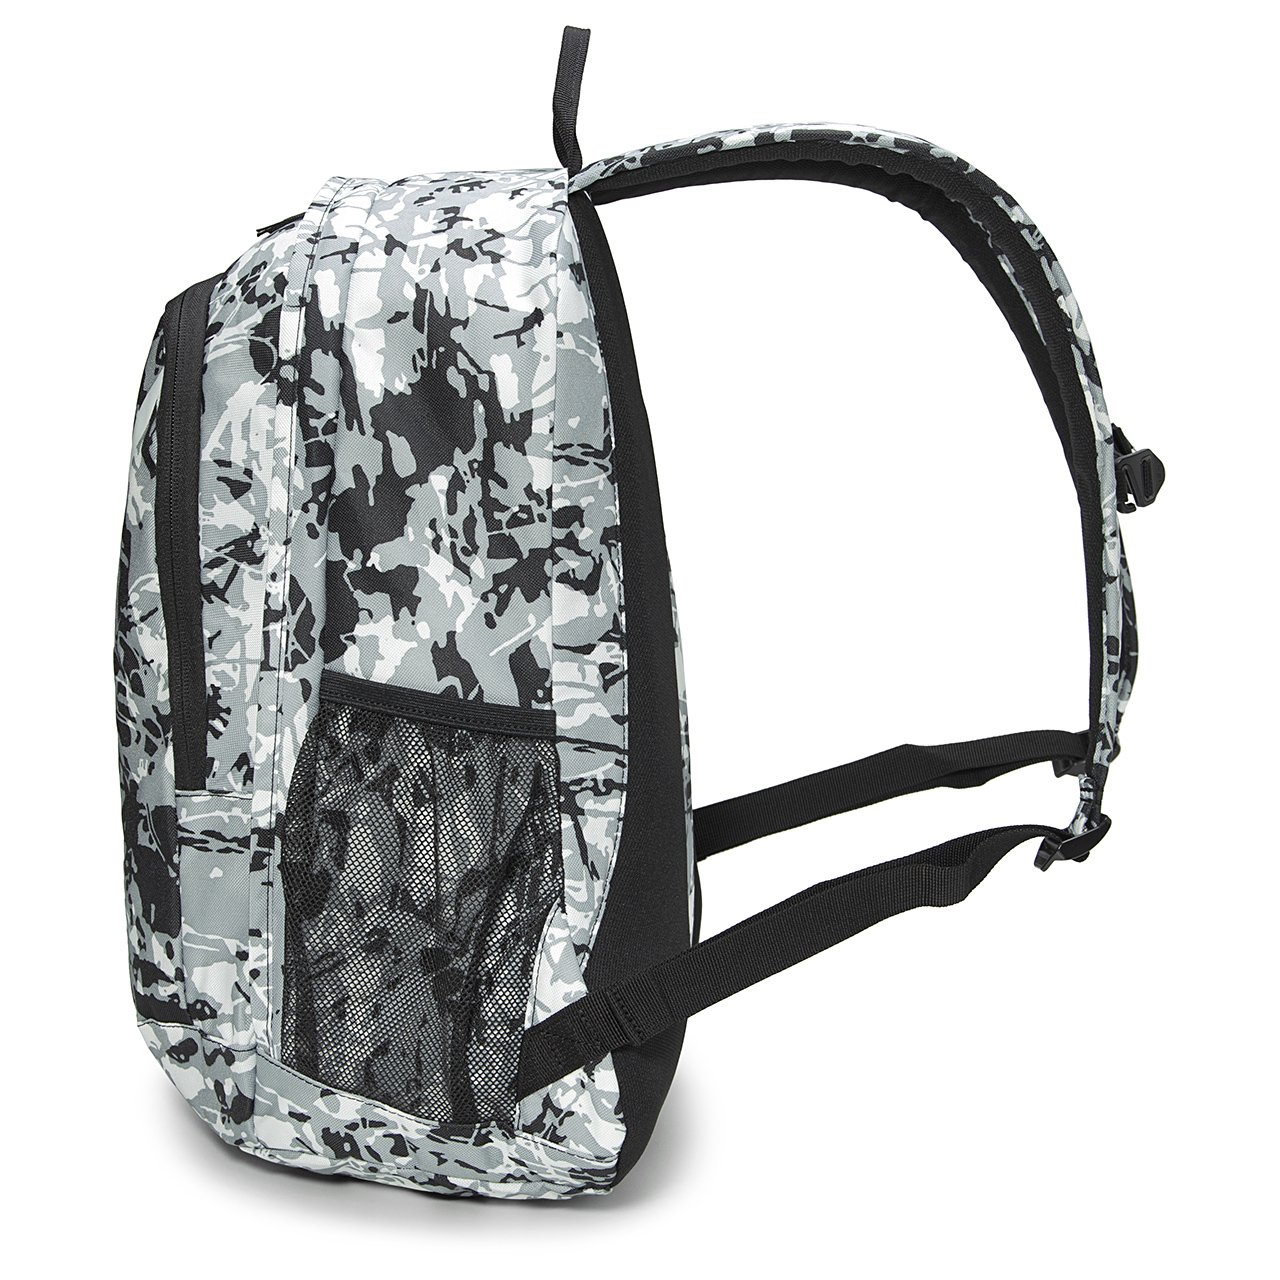 Galleon - Nike Hayward Futura 2.0 Print Laptop Backpack STUDENT School Bag  (Black Grey White 5d3a35db717ff